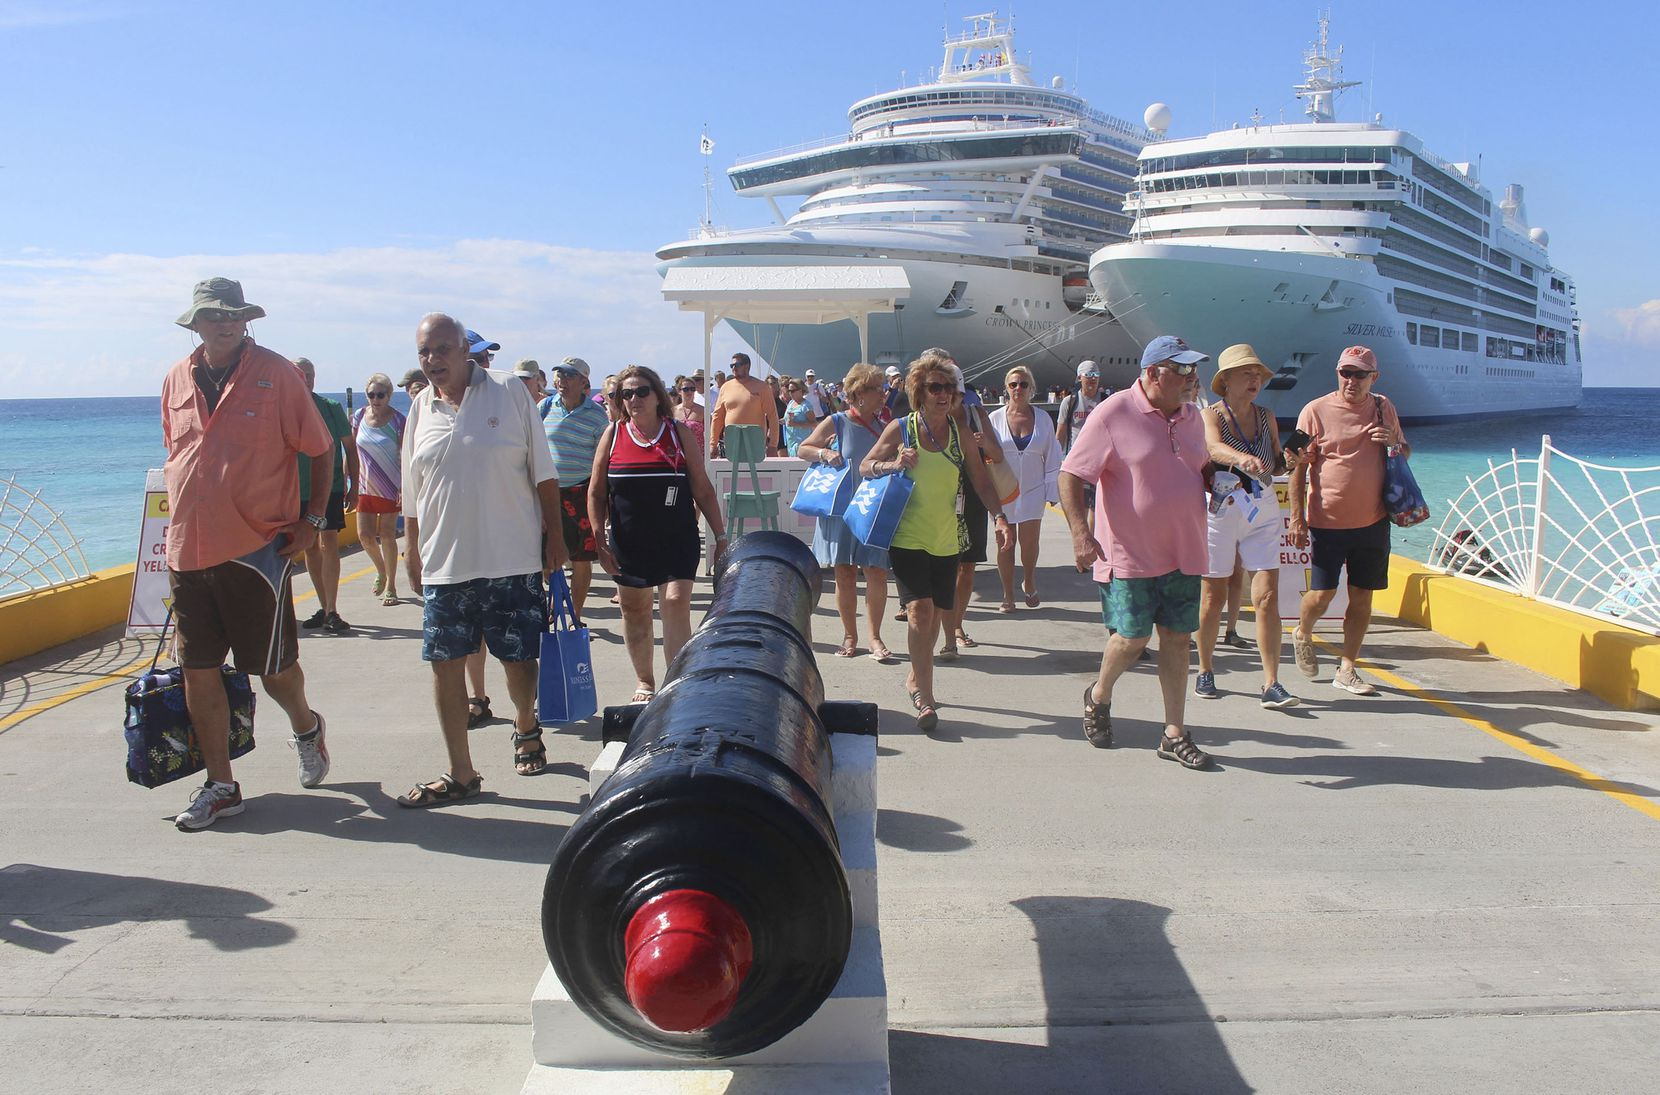 Passengers disembark from Princess Cruises' Crown Princess, left, and Silversea's Silver Muse at Grand Turk Island, in the Turks and Caicos. The cruise industry has exploded, offering a much bigger range of itineraries and options for almost every traveler's taste.